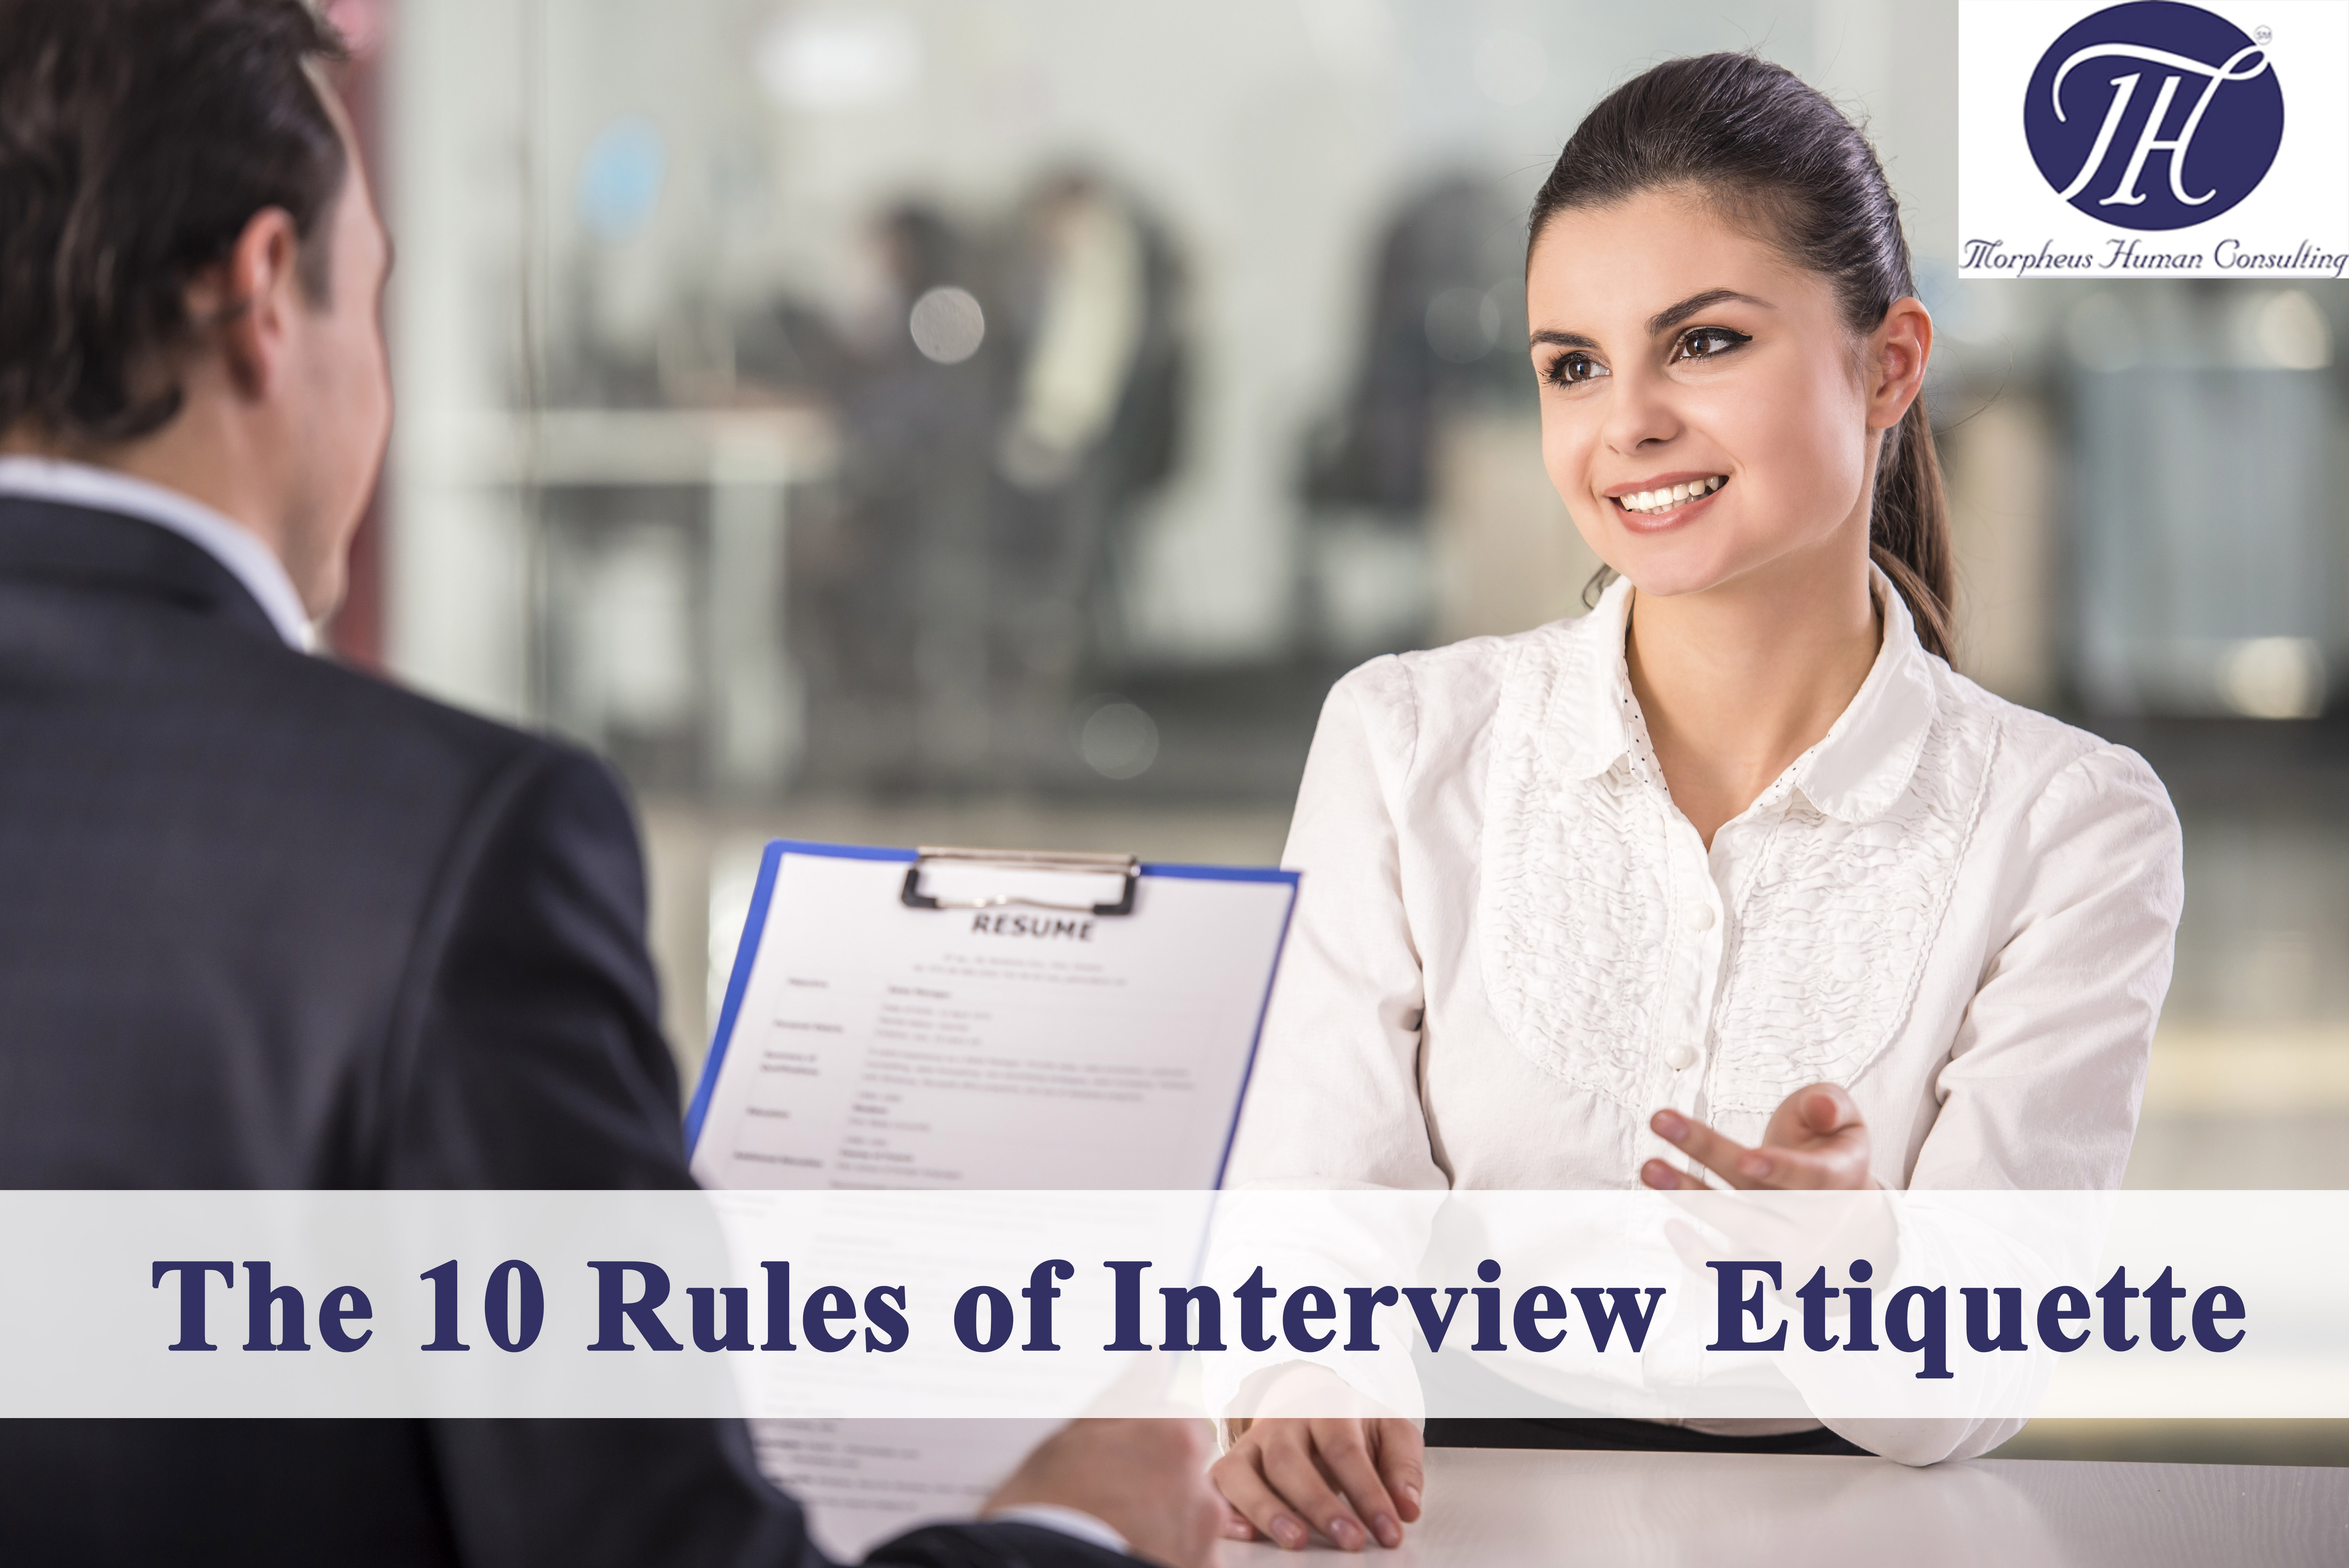 Rules of Interview etiquette